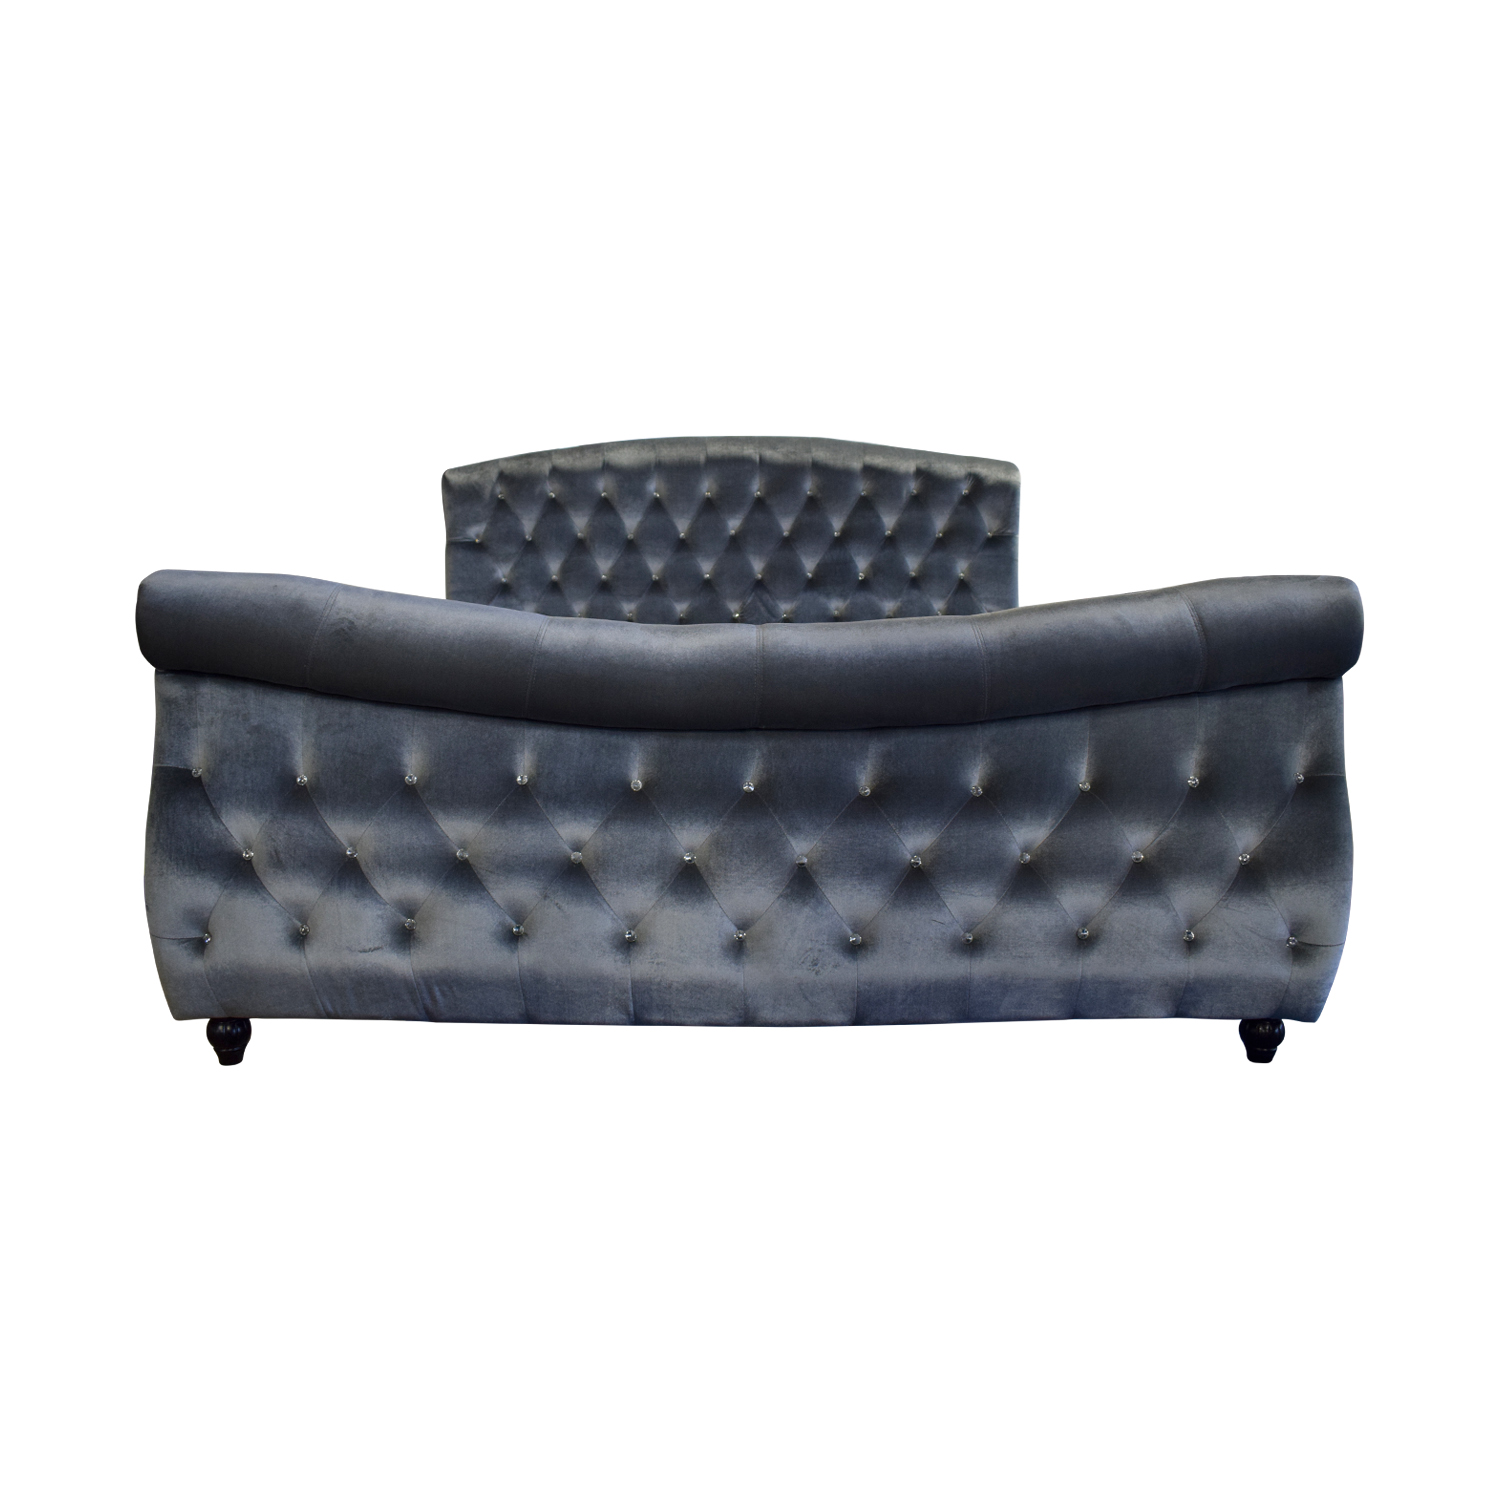 Pulaski Pulaski Grey Tufted Nailhead King Bed Frame Grey